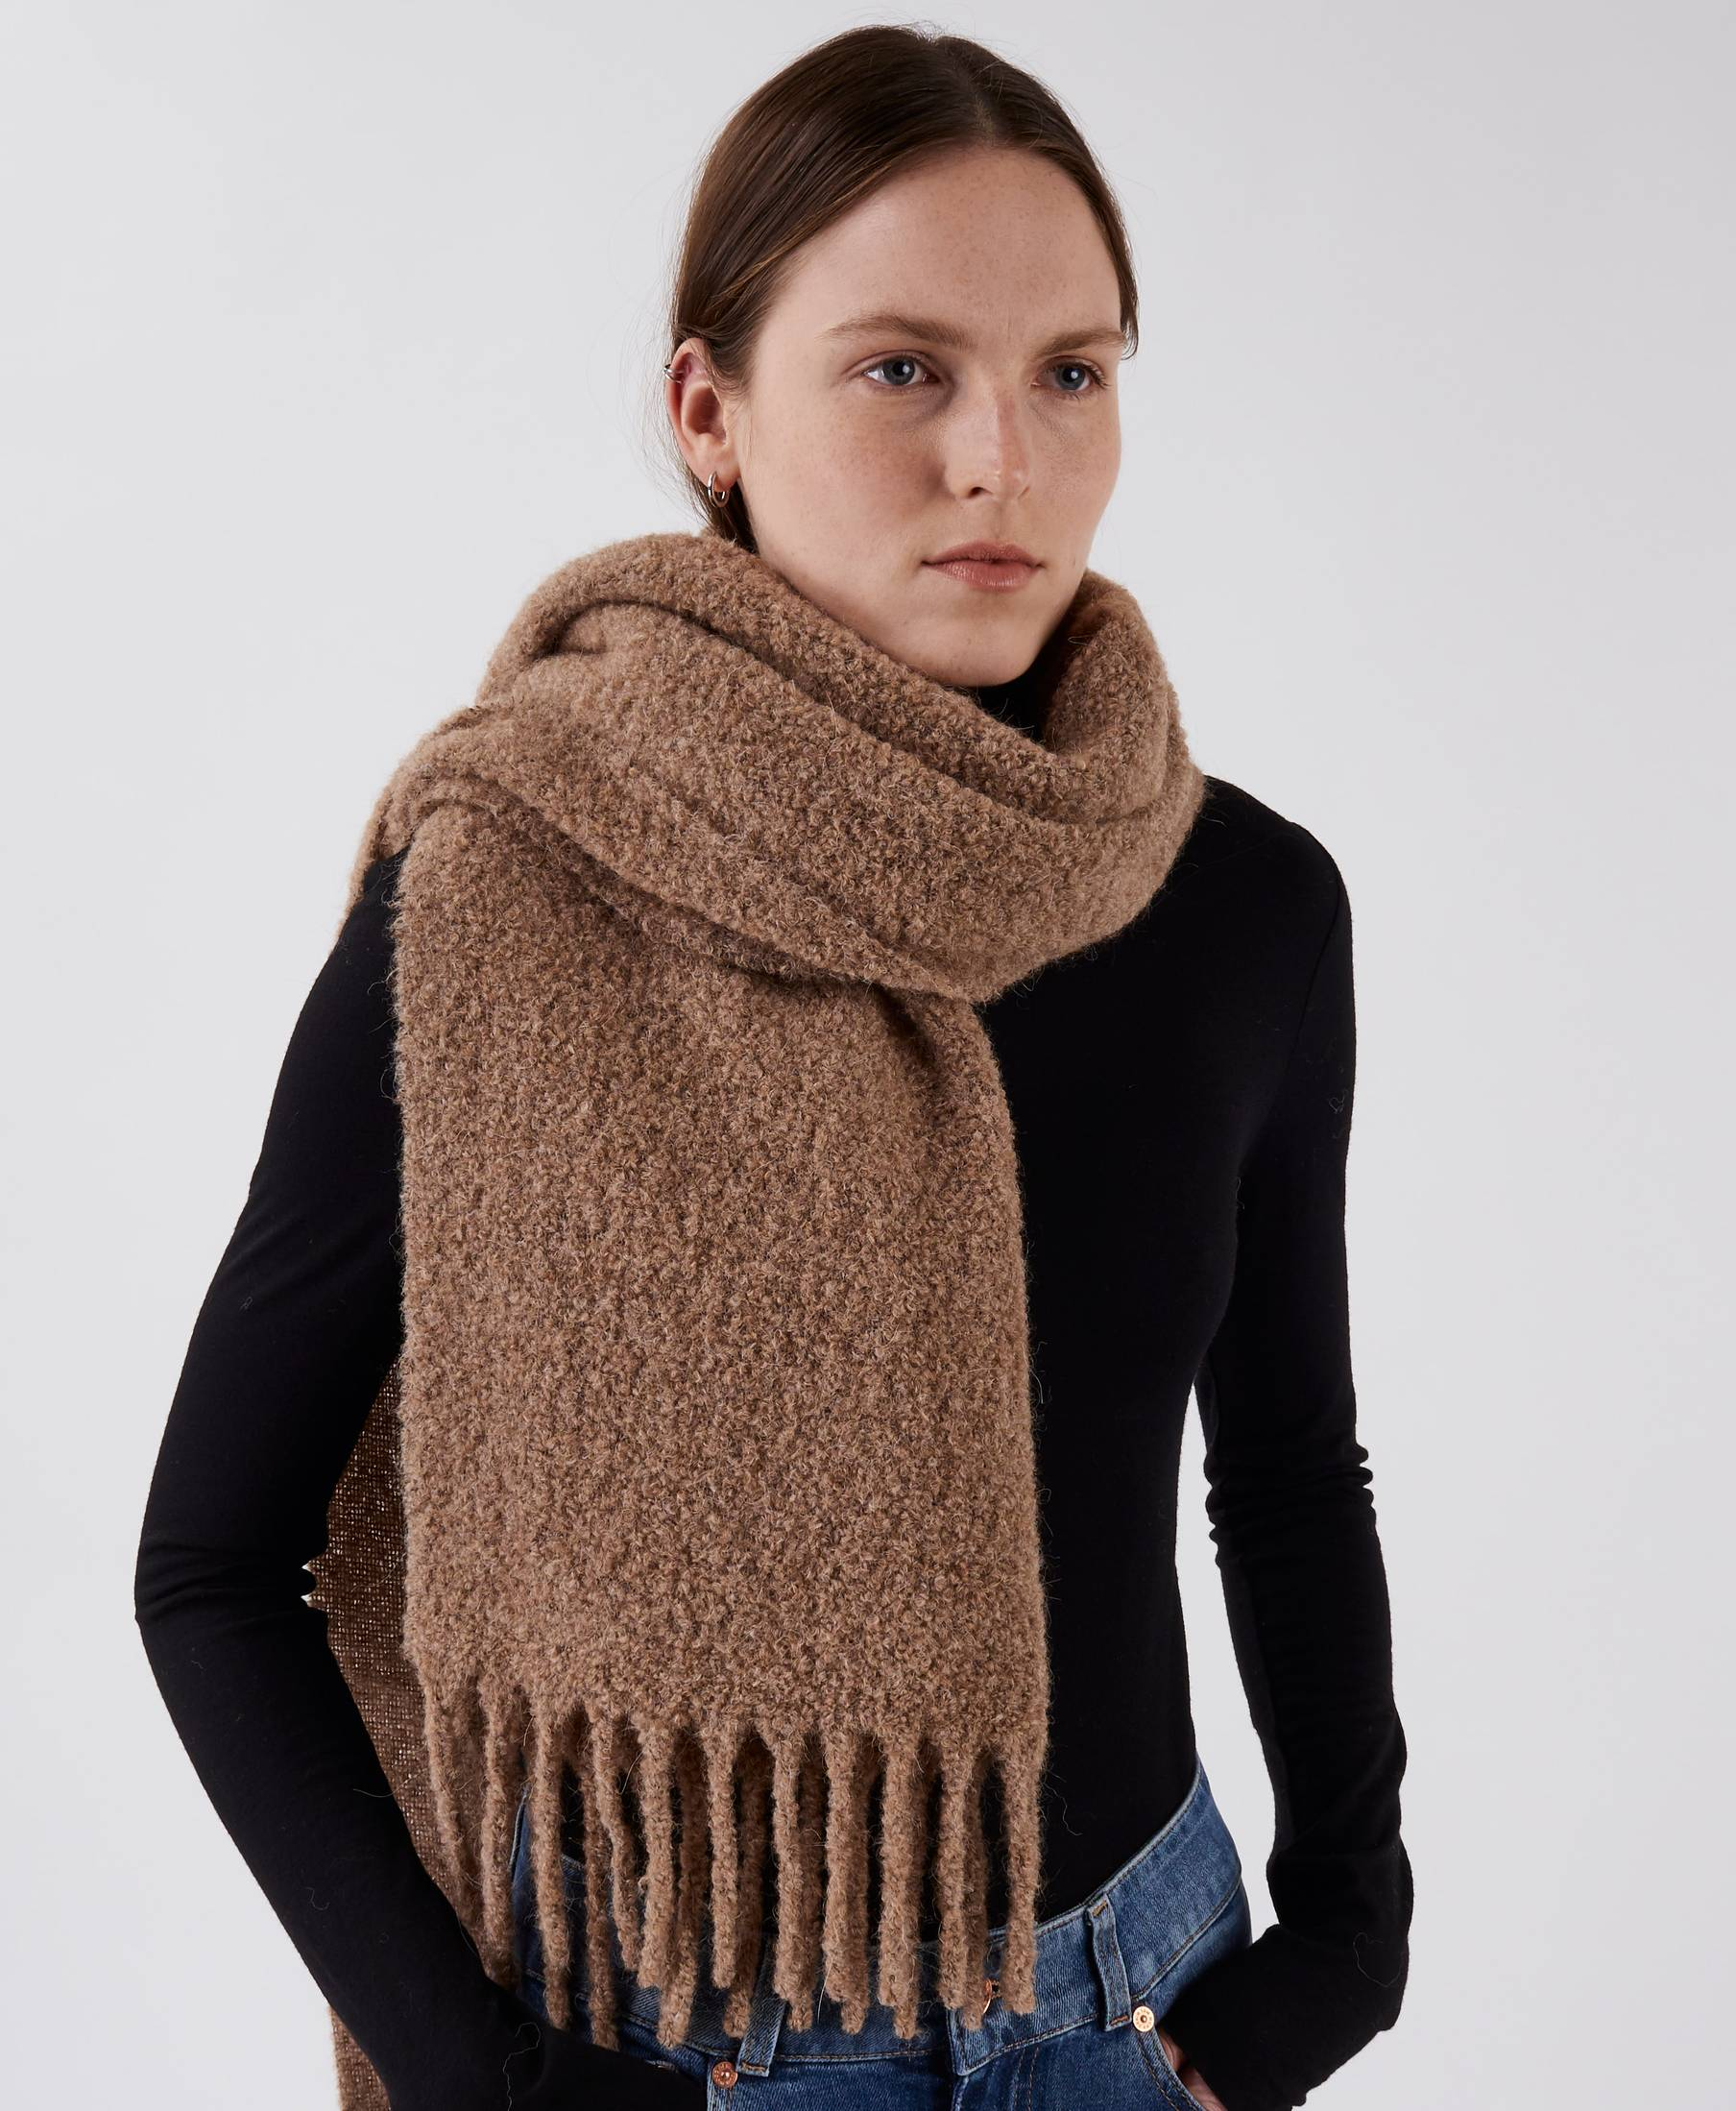 Boucle Scarf Cozy Camel